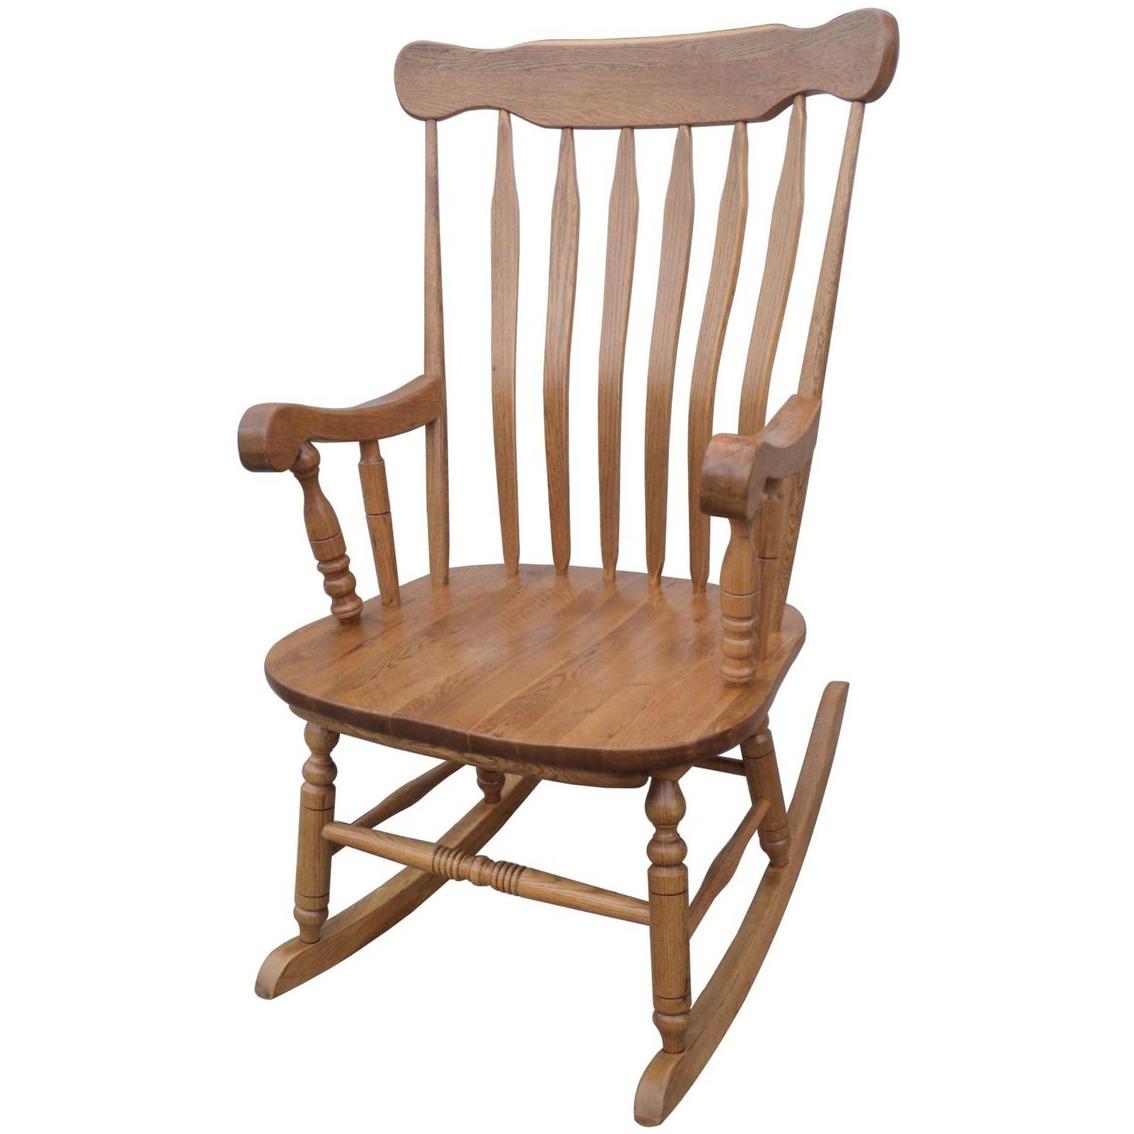 Missoni Home Rocking Chair: Chelsea Home Candlewood Rocker